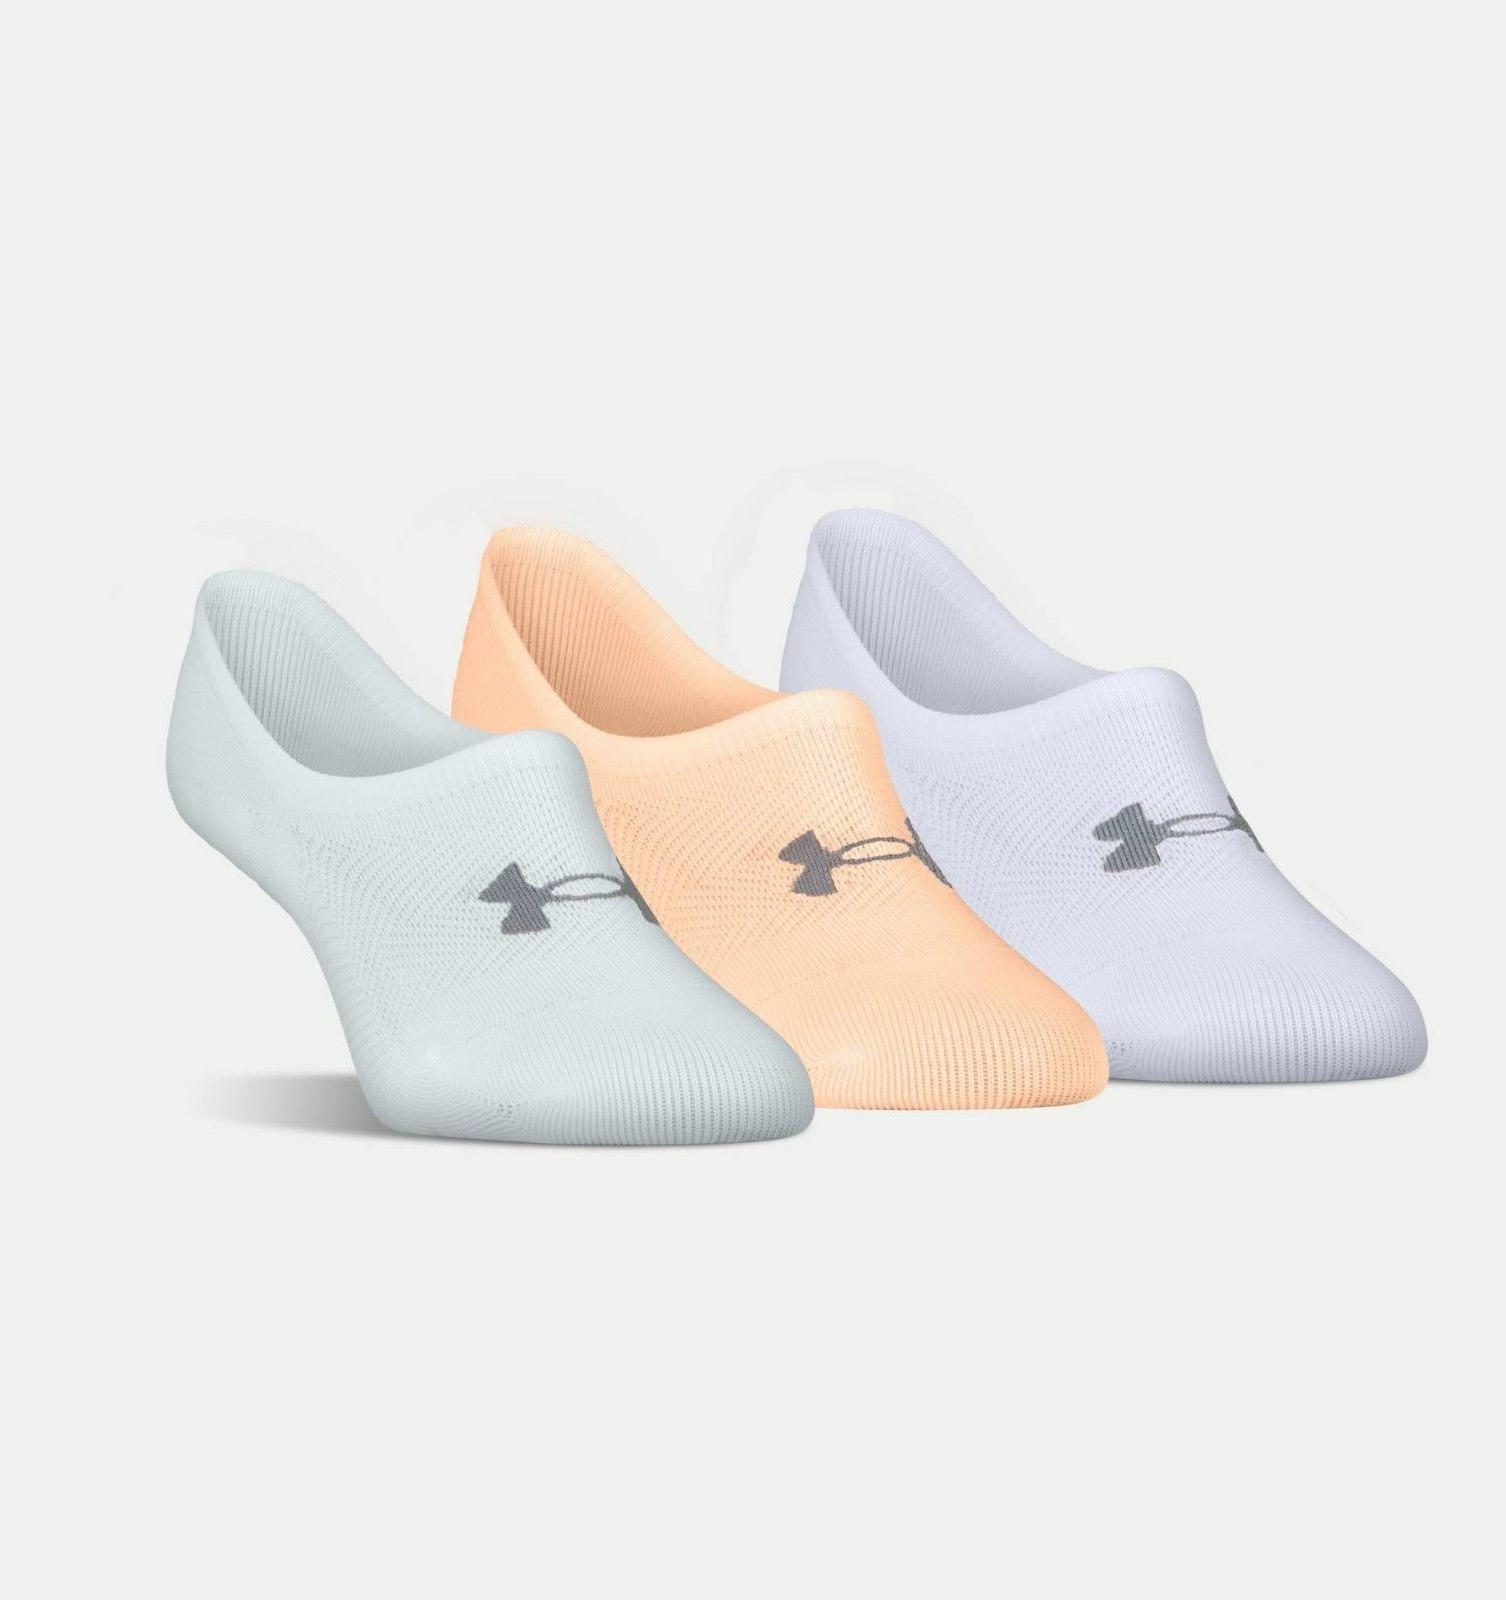 Under Armour Womens UA Essential Ultra Low 3-Pack  Sock- Pic